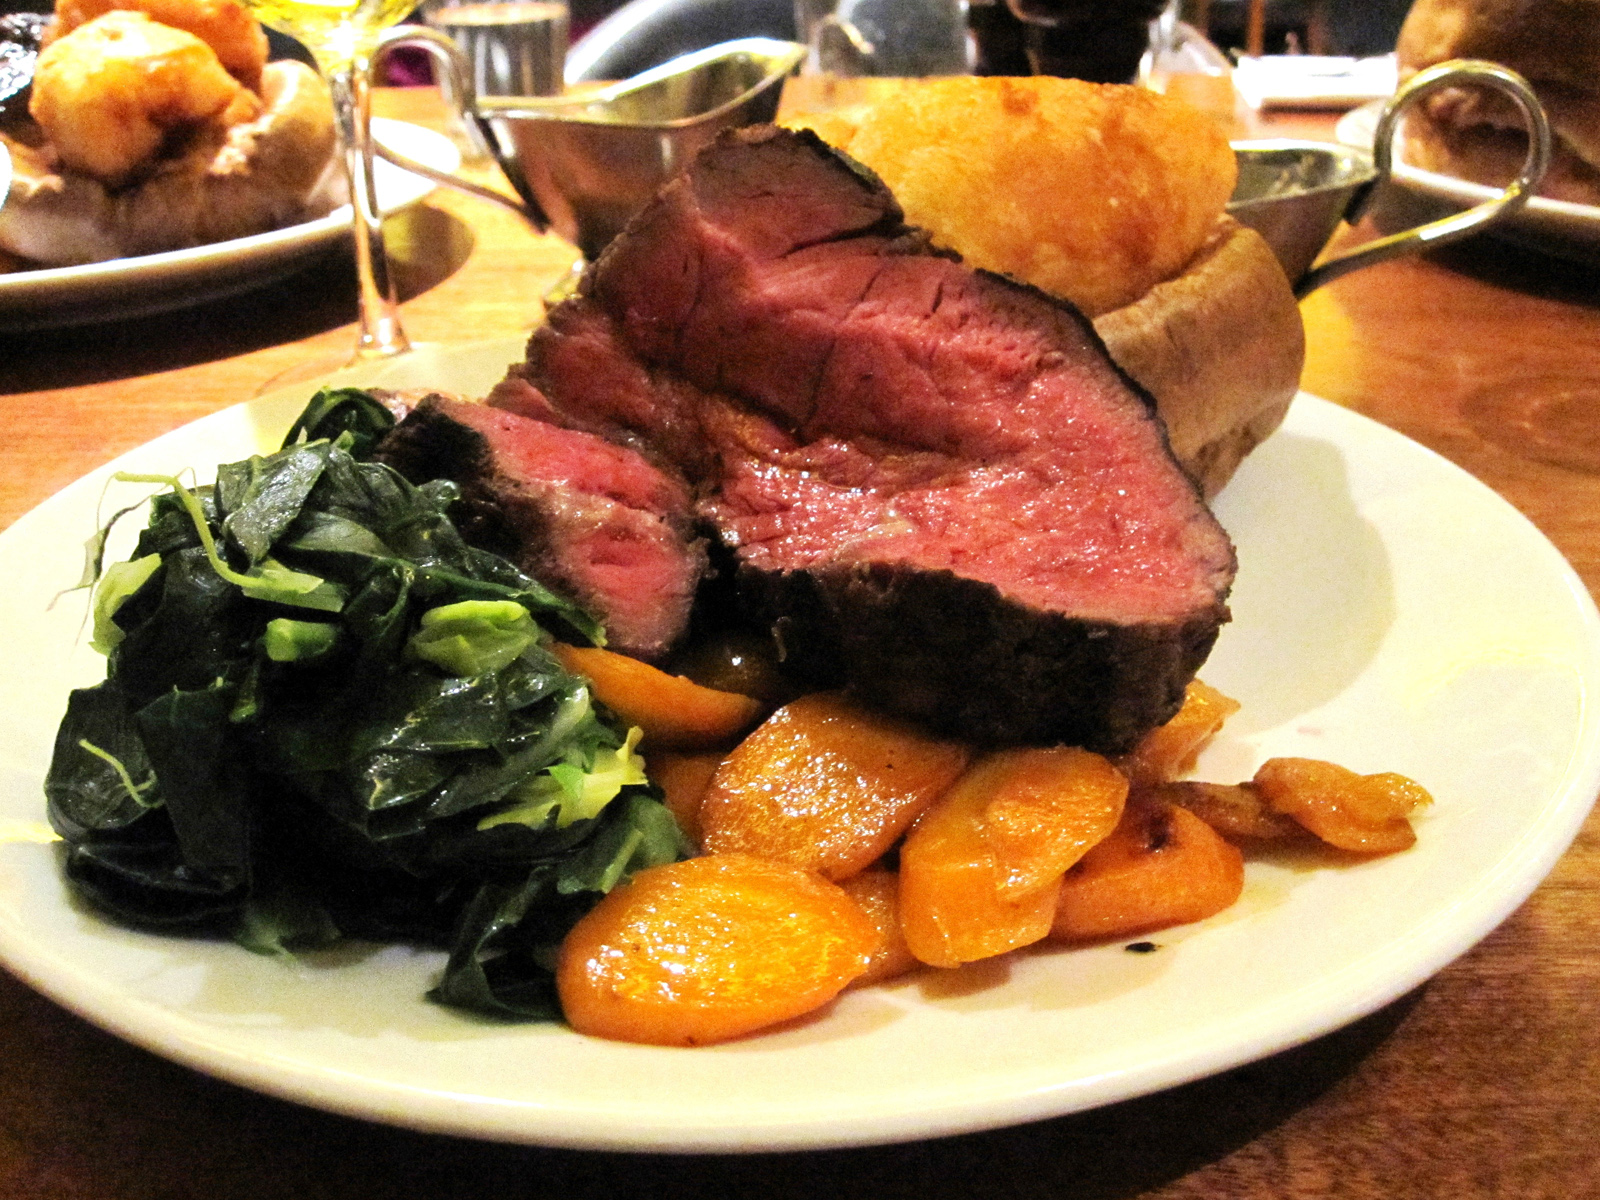 A steak dinner at Hawksmoor steak house, located in the mildly-restored basement of an old brewery in the Covent Garden district of London. (Photo courtesy Google Images)